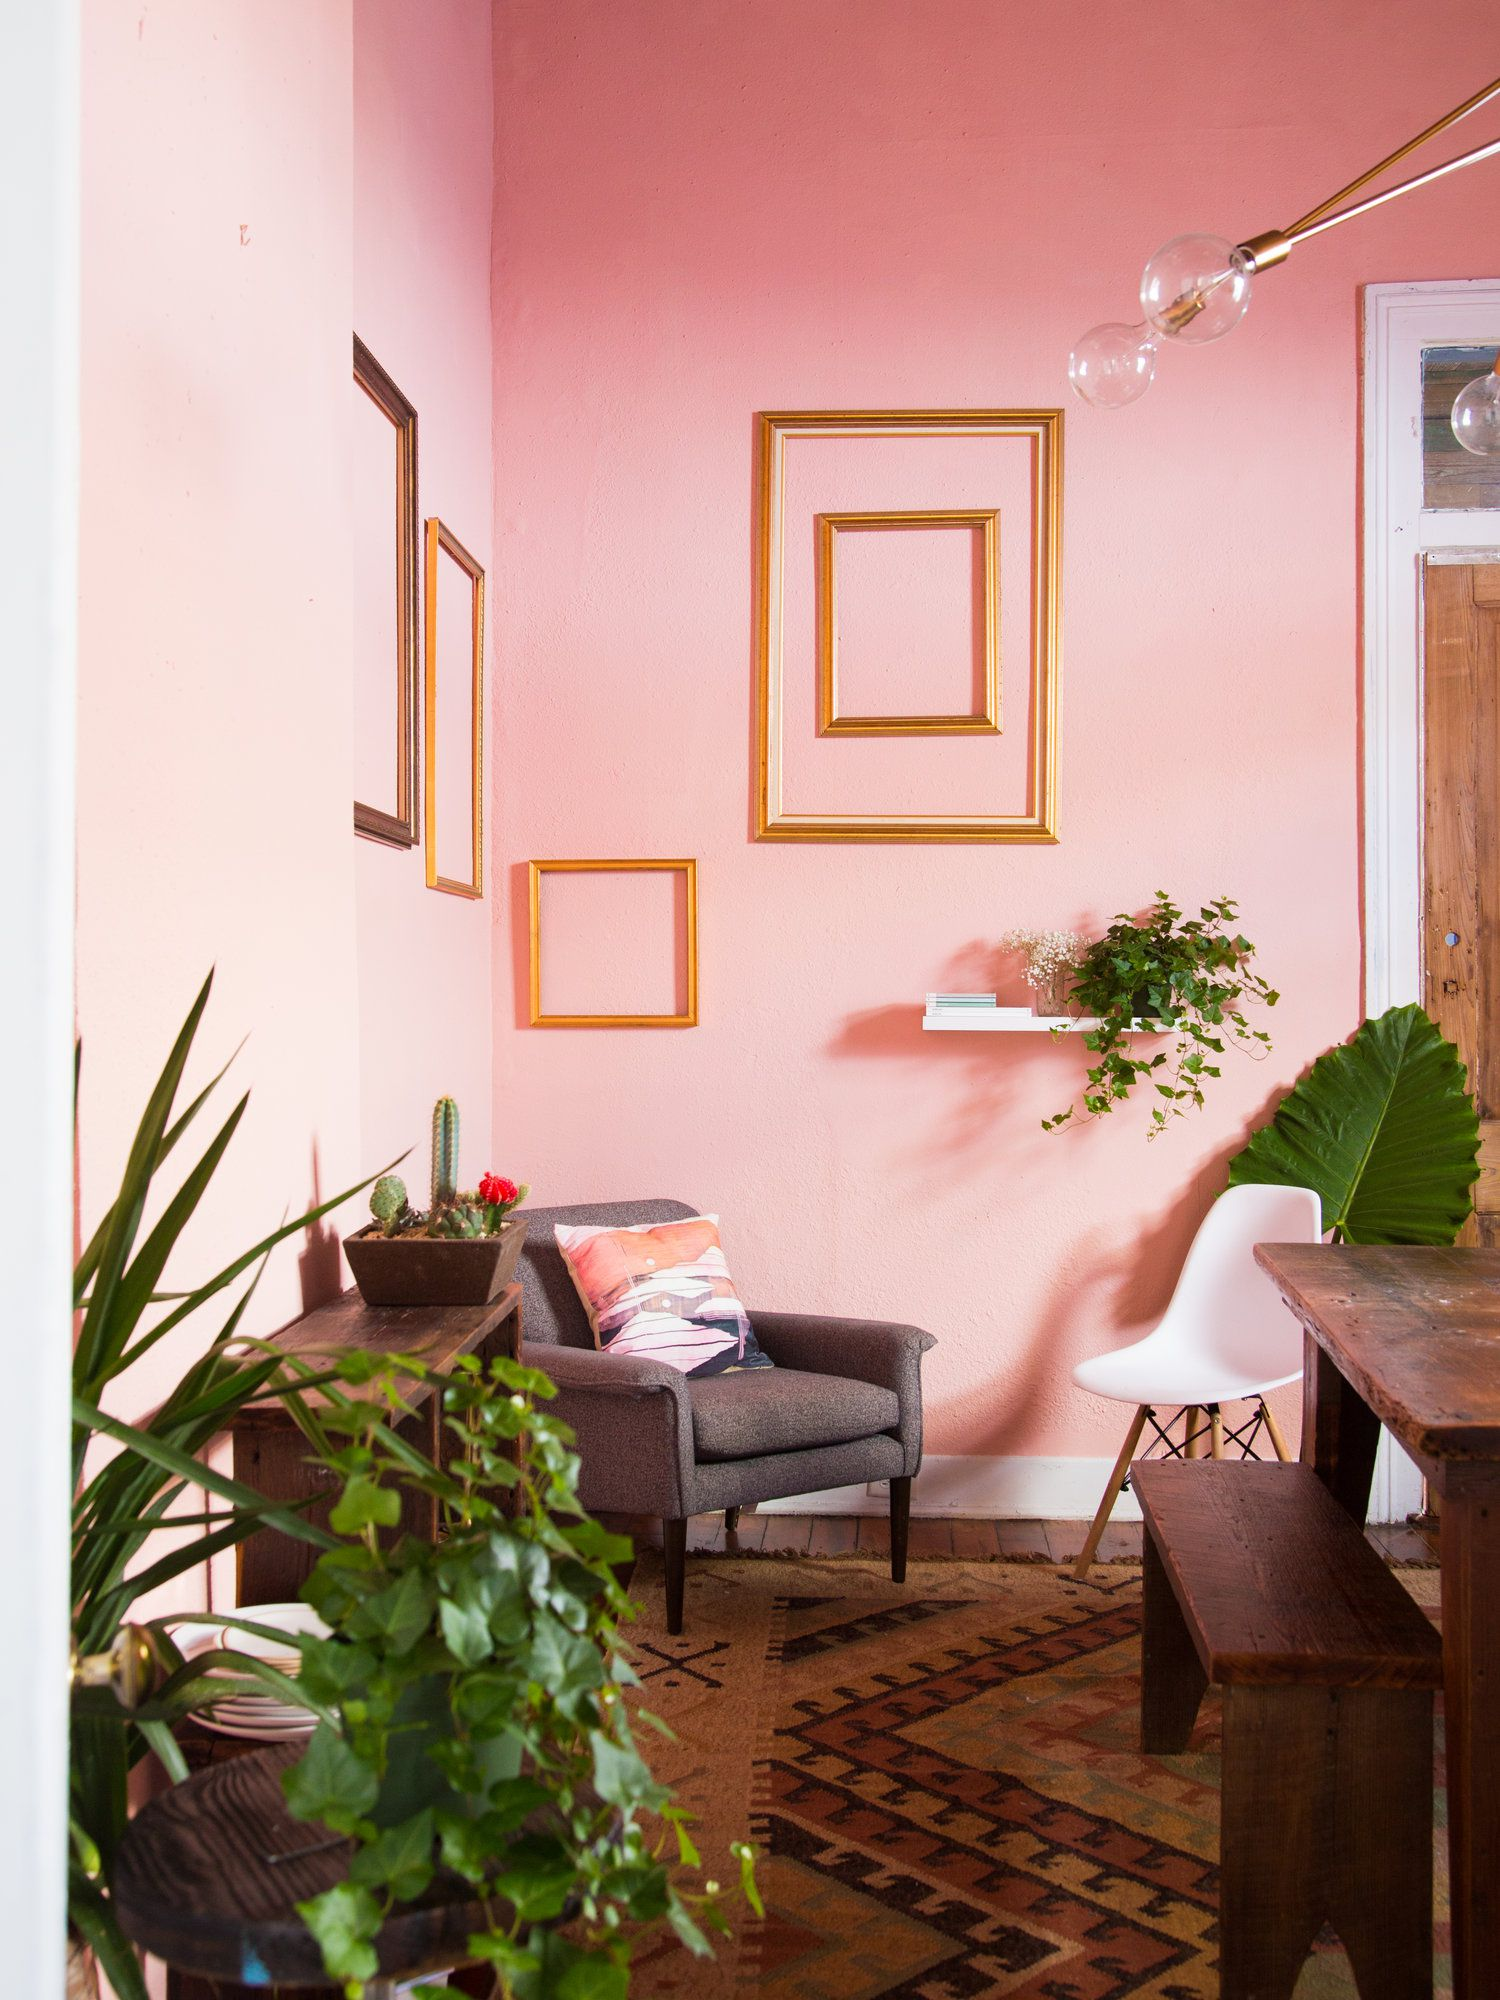 House Tour: A Pink Bywater Shotgun Home in New Orleans